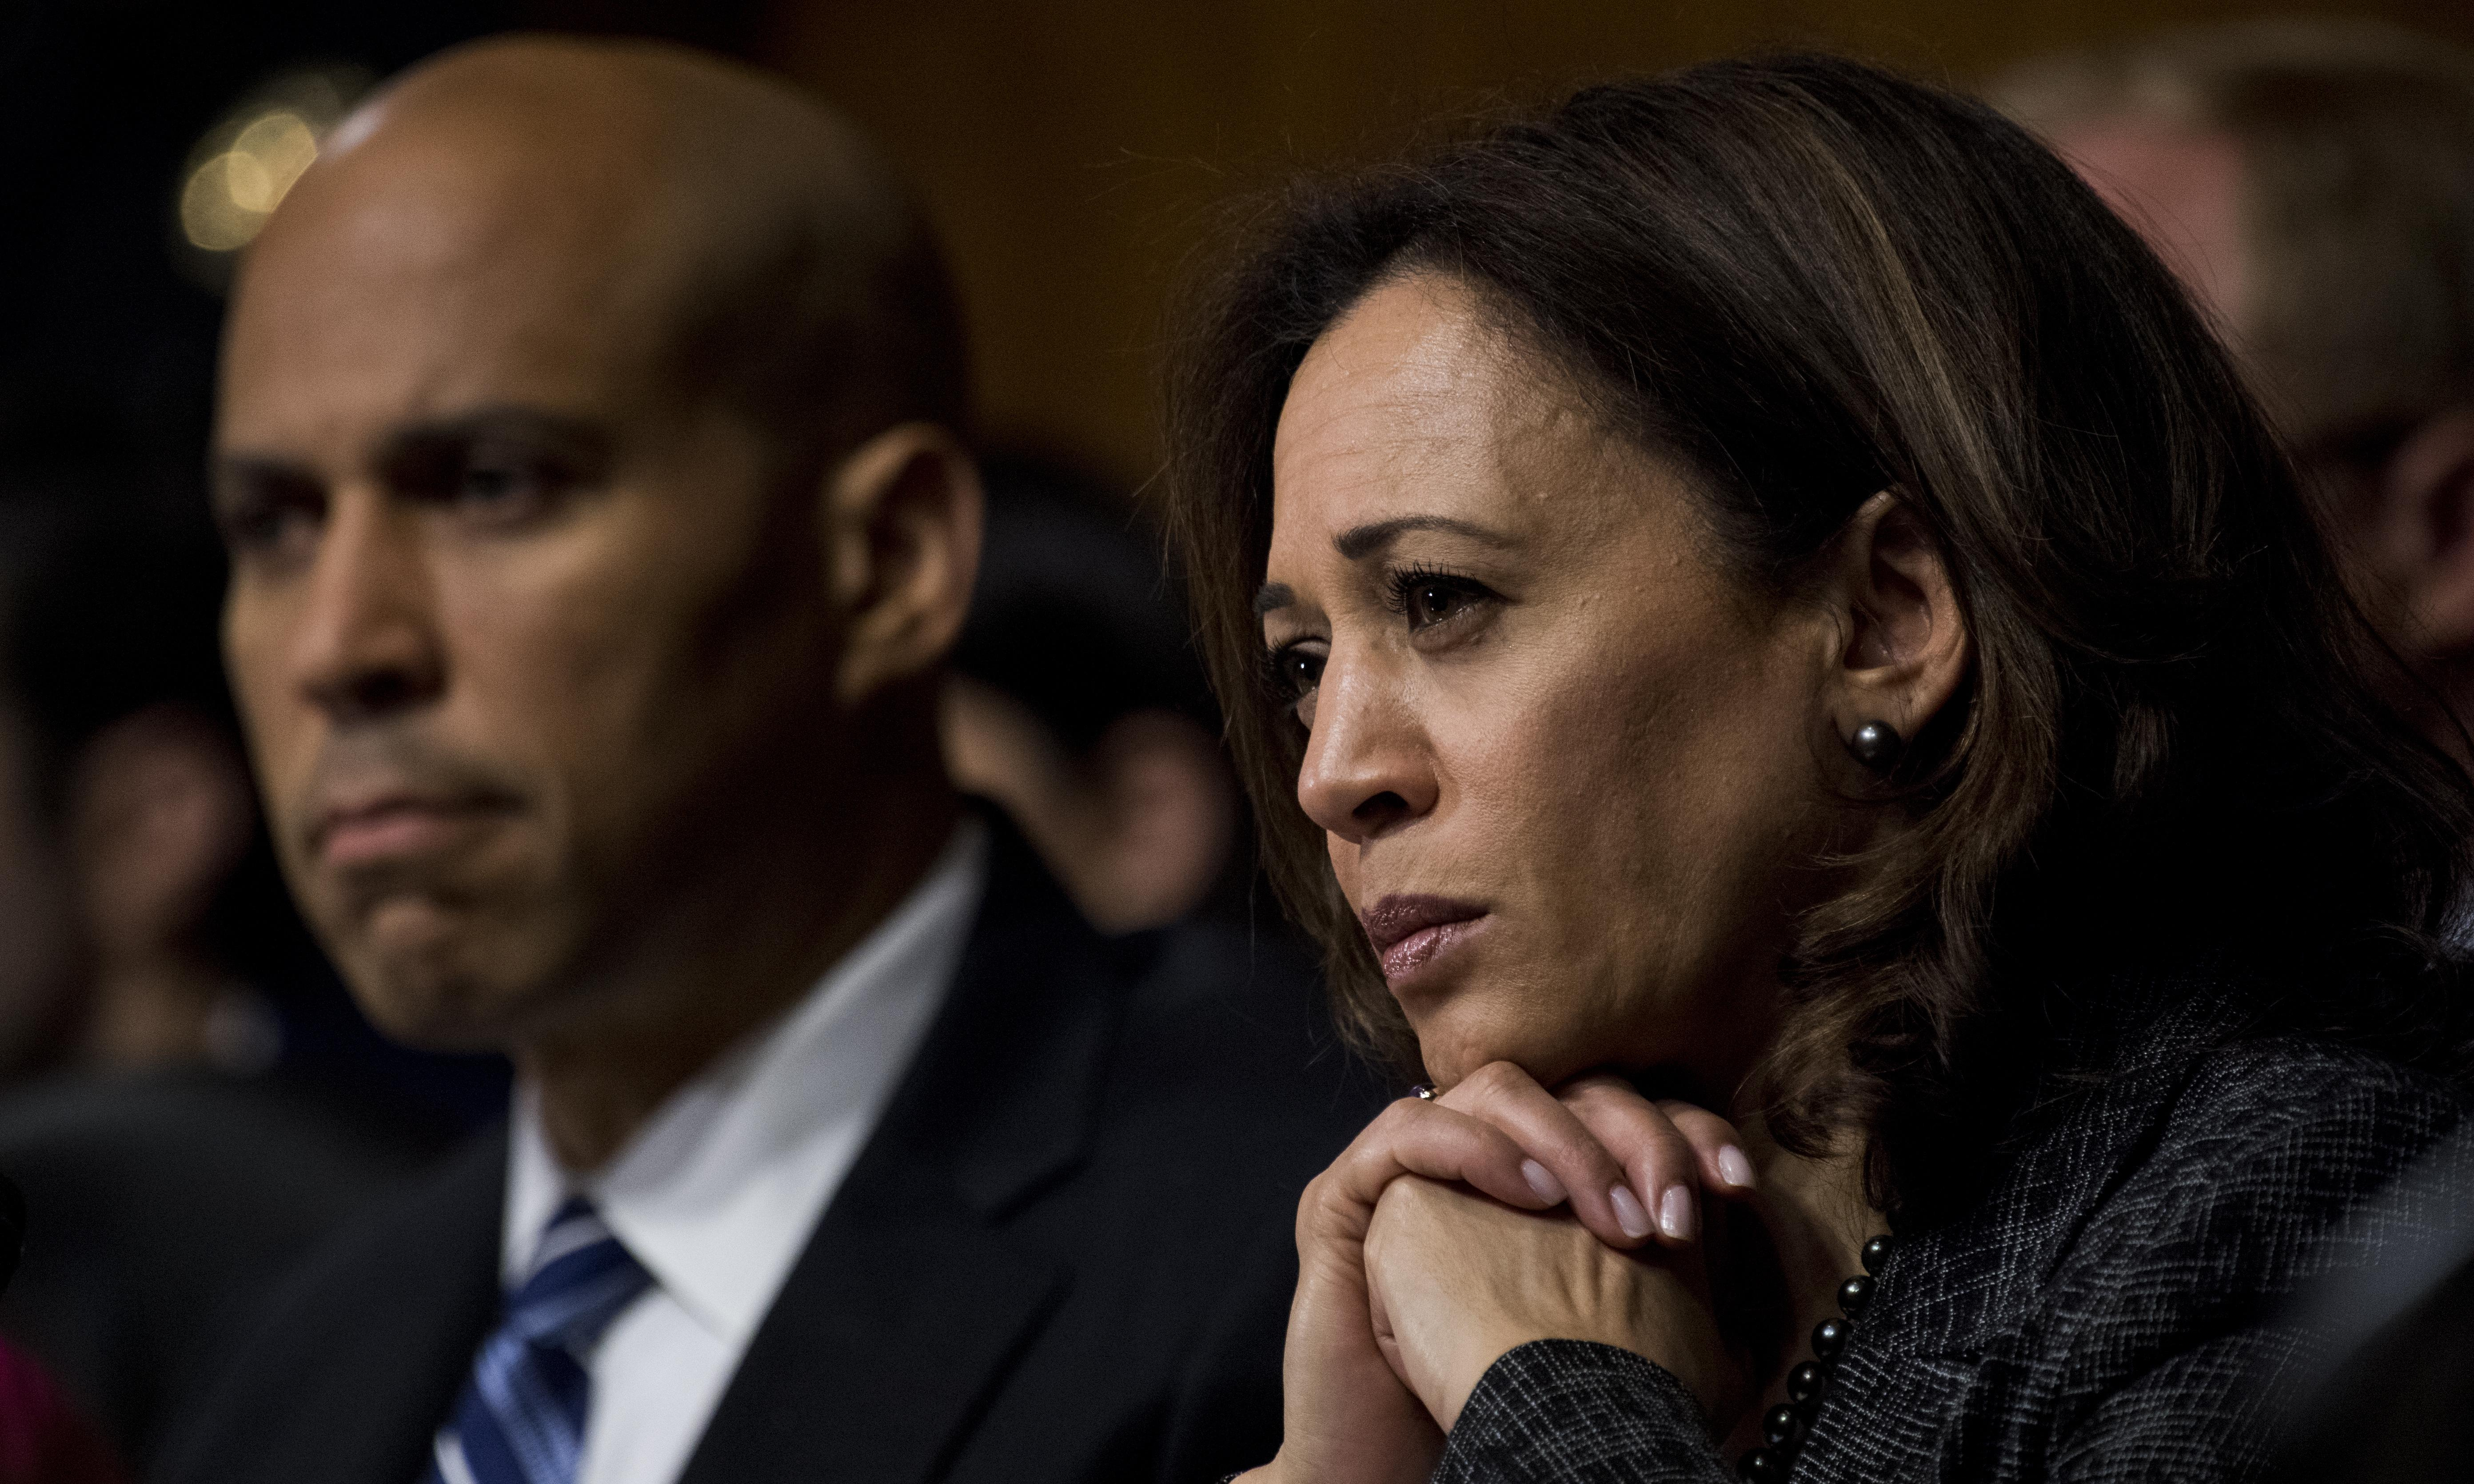 These 2020 hopefuls are courting Wall Street. Don't be fooled by their progressive veneer